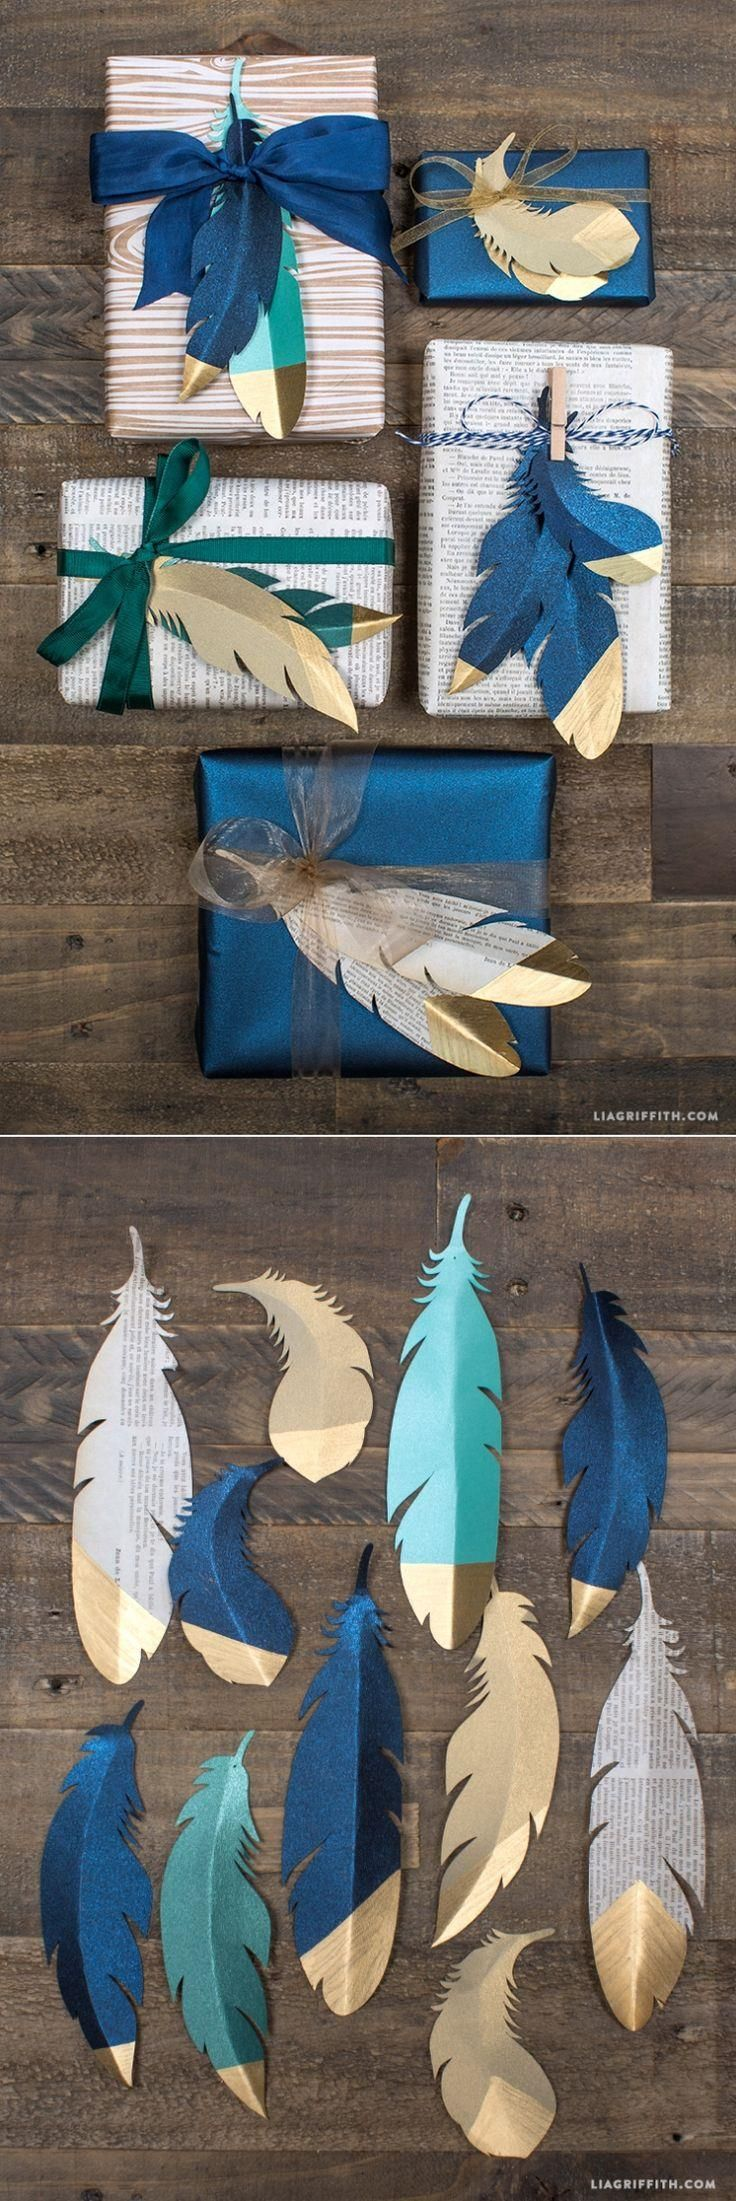 Cute & Creative Gift Wrapping Ideas You Will Adore!